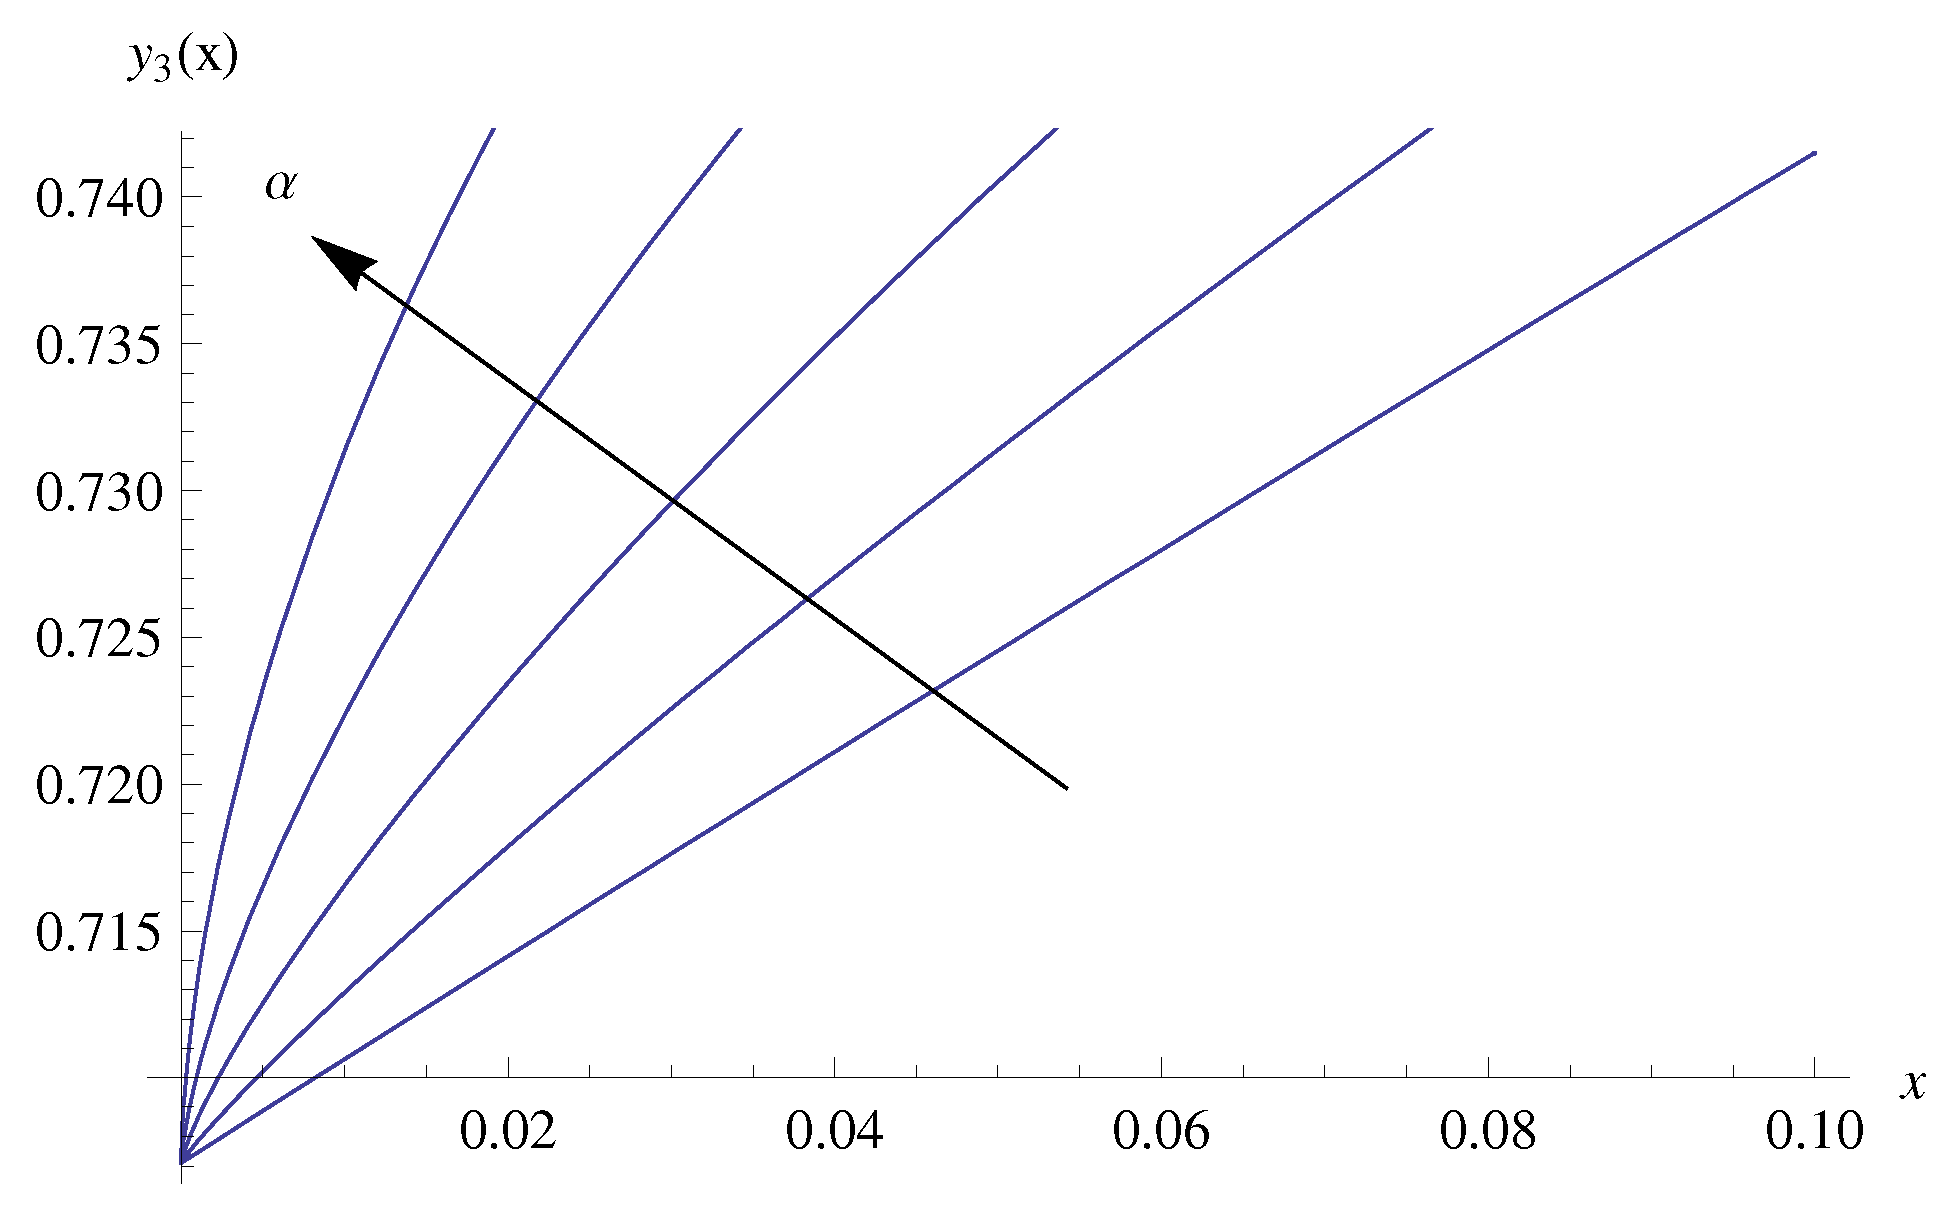 Formulate A Generalization For All Combinations Of Series Resistances